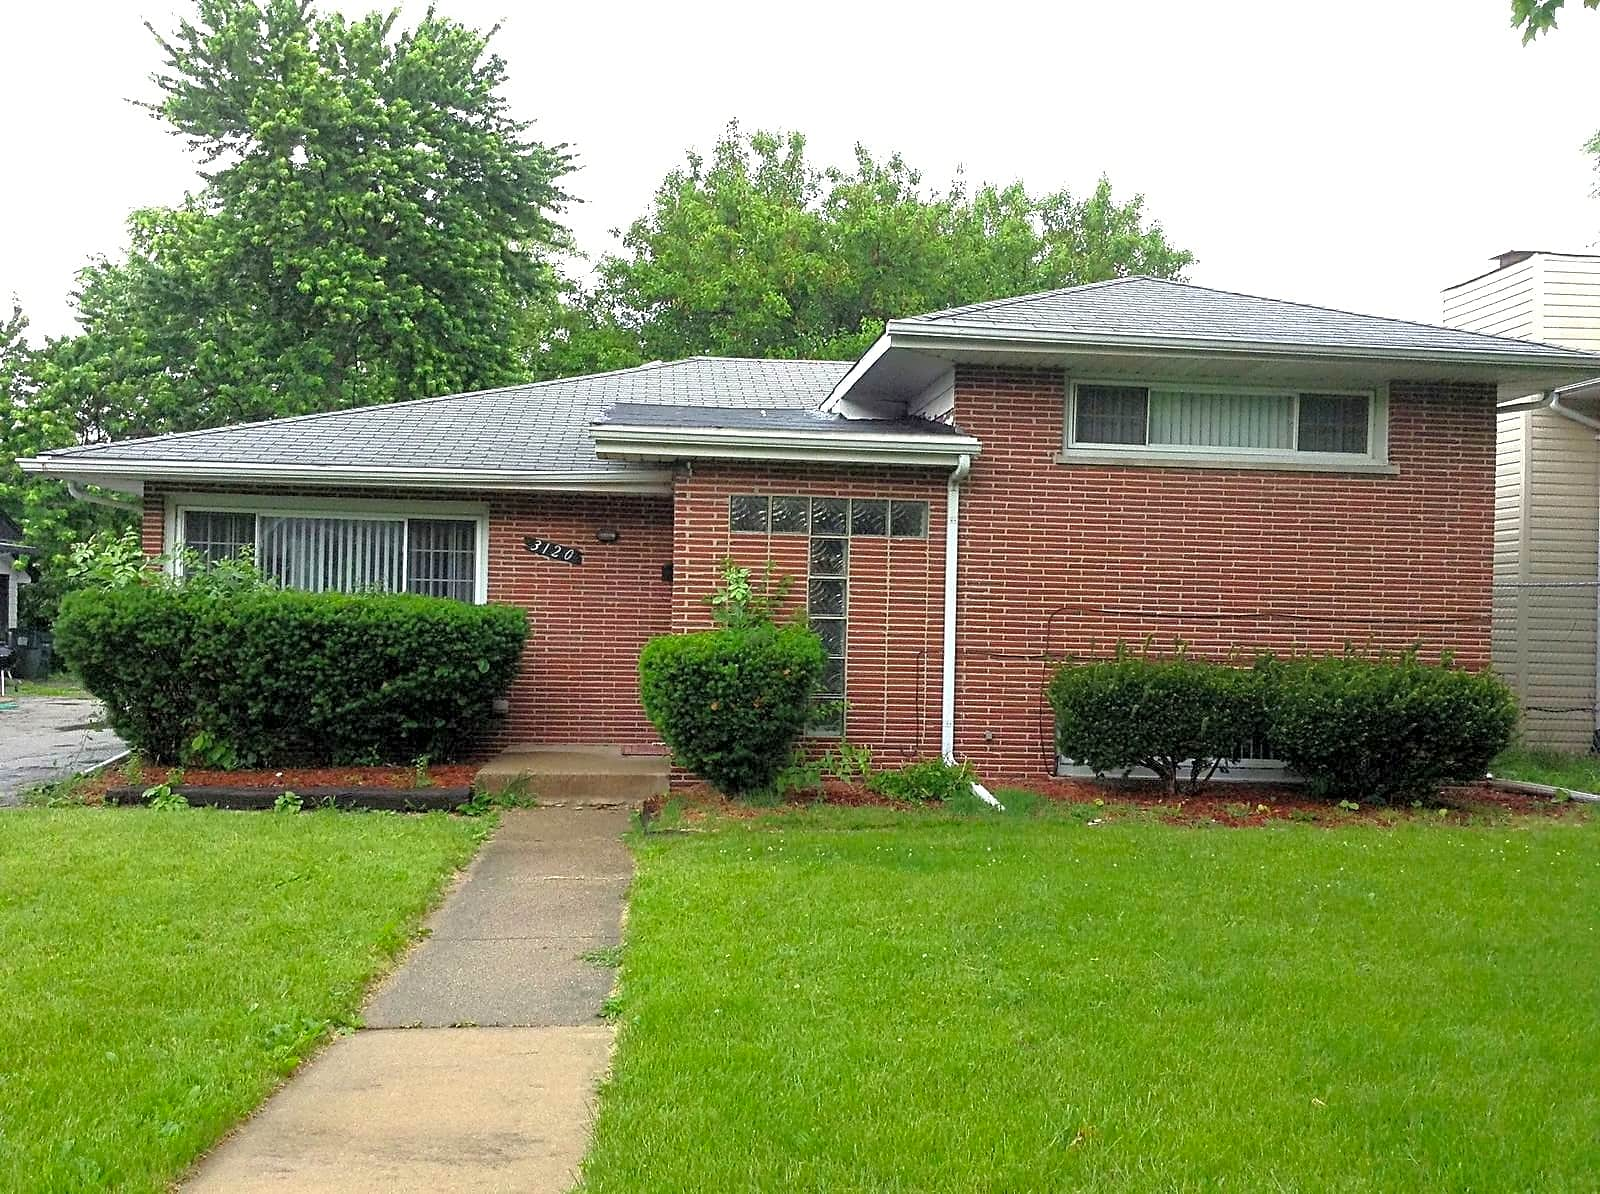 House for Rent in Hazel Crest